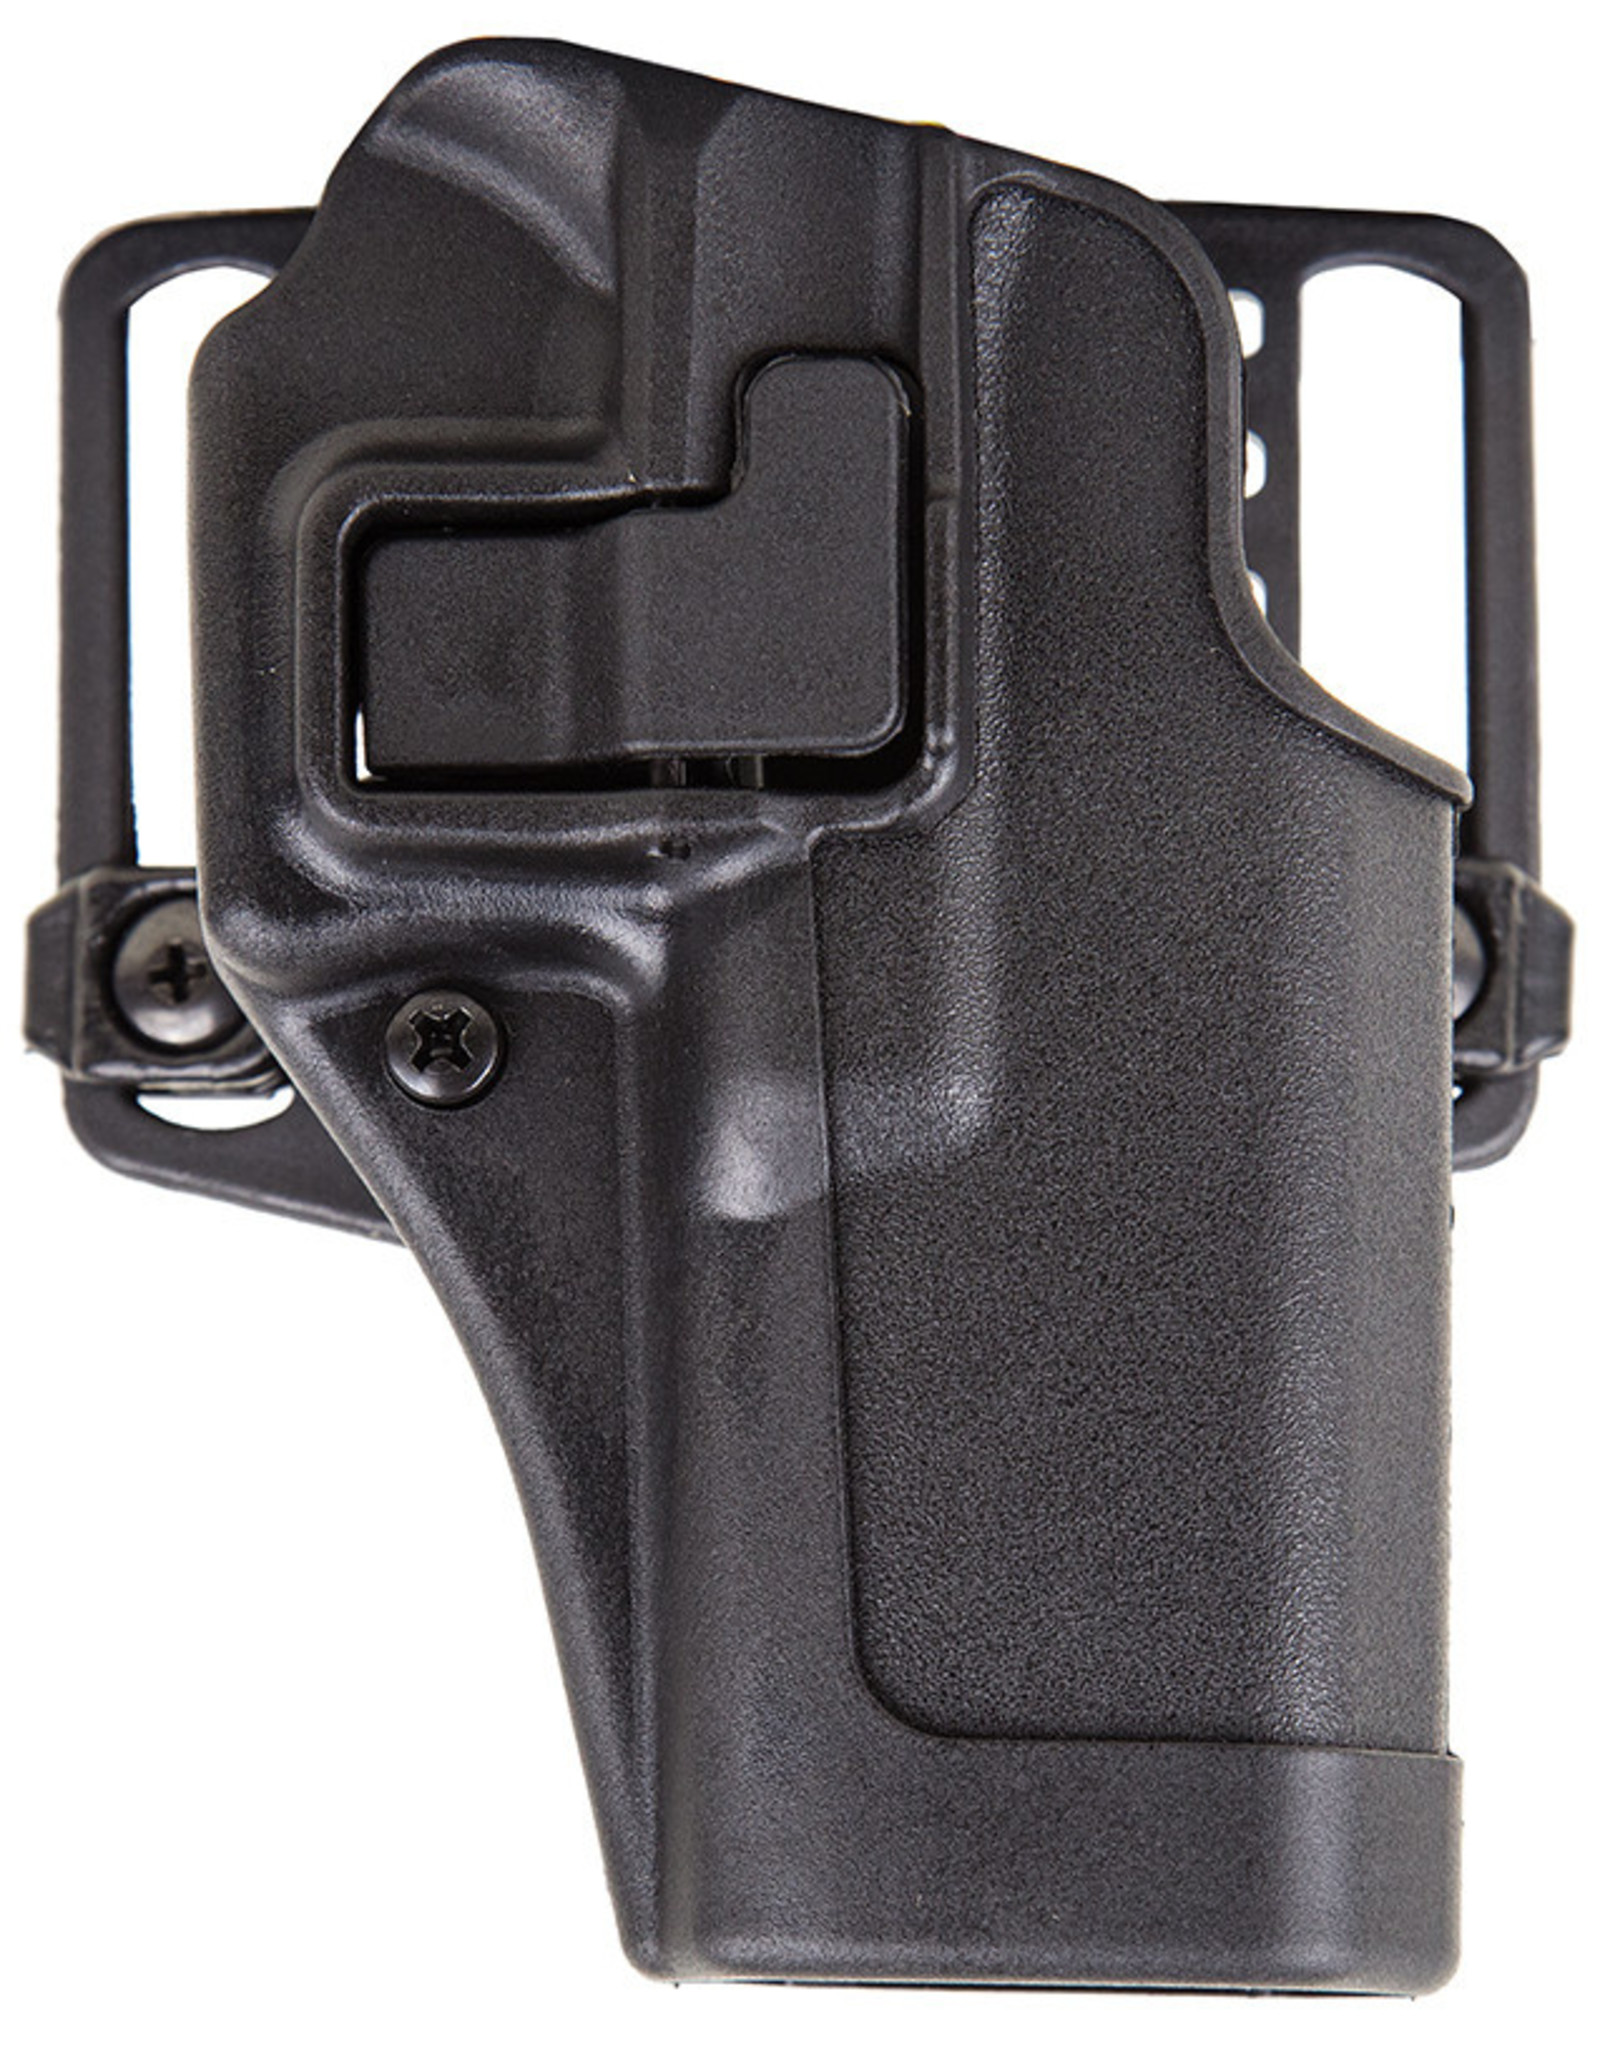 BLACK HAWK PRODUCTS Blackhawk Sportster Holster for Springfield XD Competition